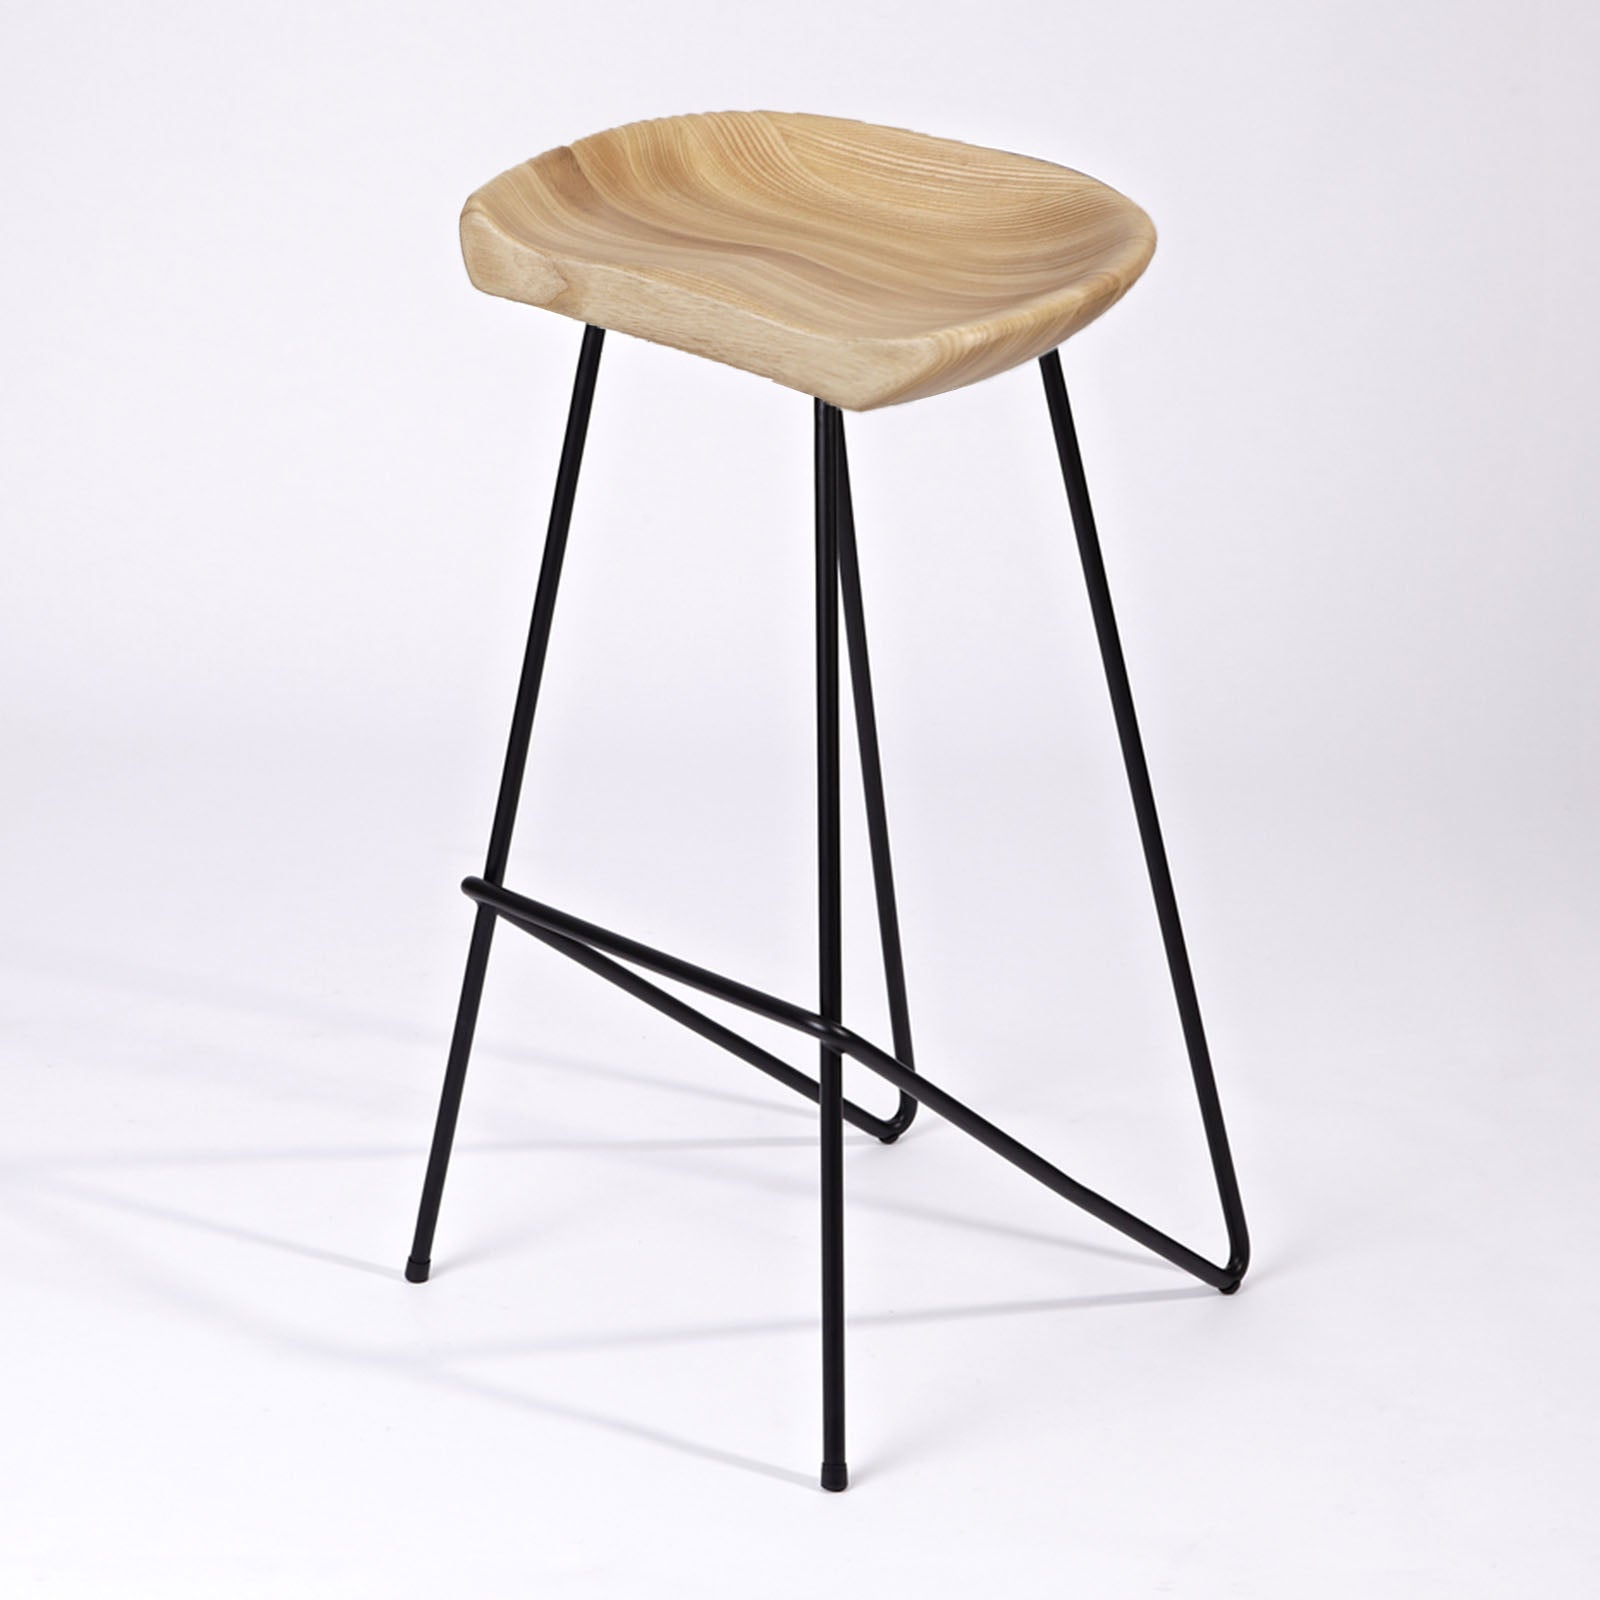 Solid Wood Bar Stool WS-034E-Bleg